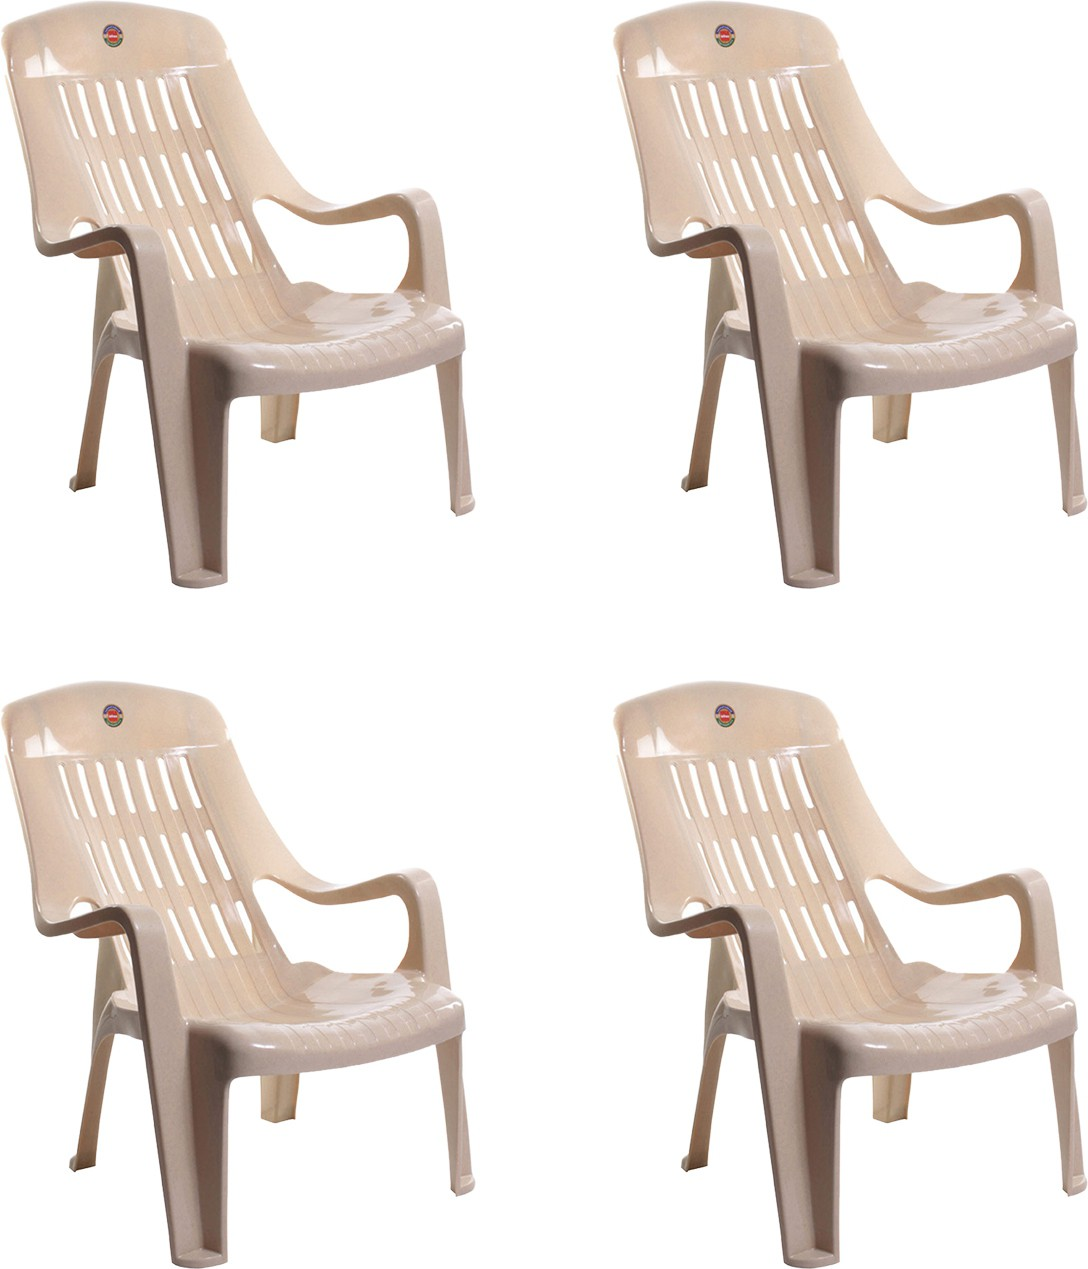 Cello Furniture Plastic Living Room Chairfinish Color Living Room Plastic Chairs India